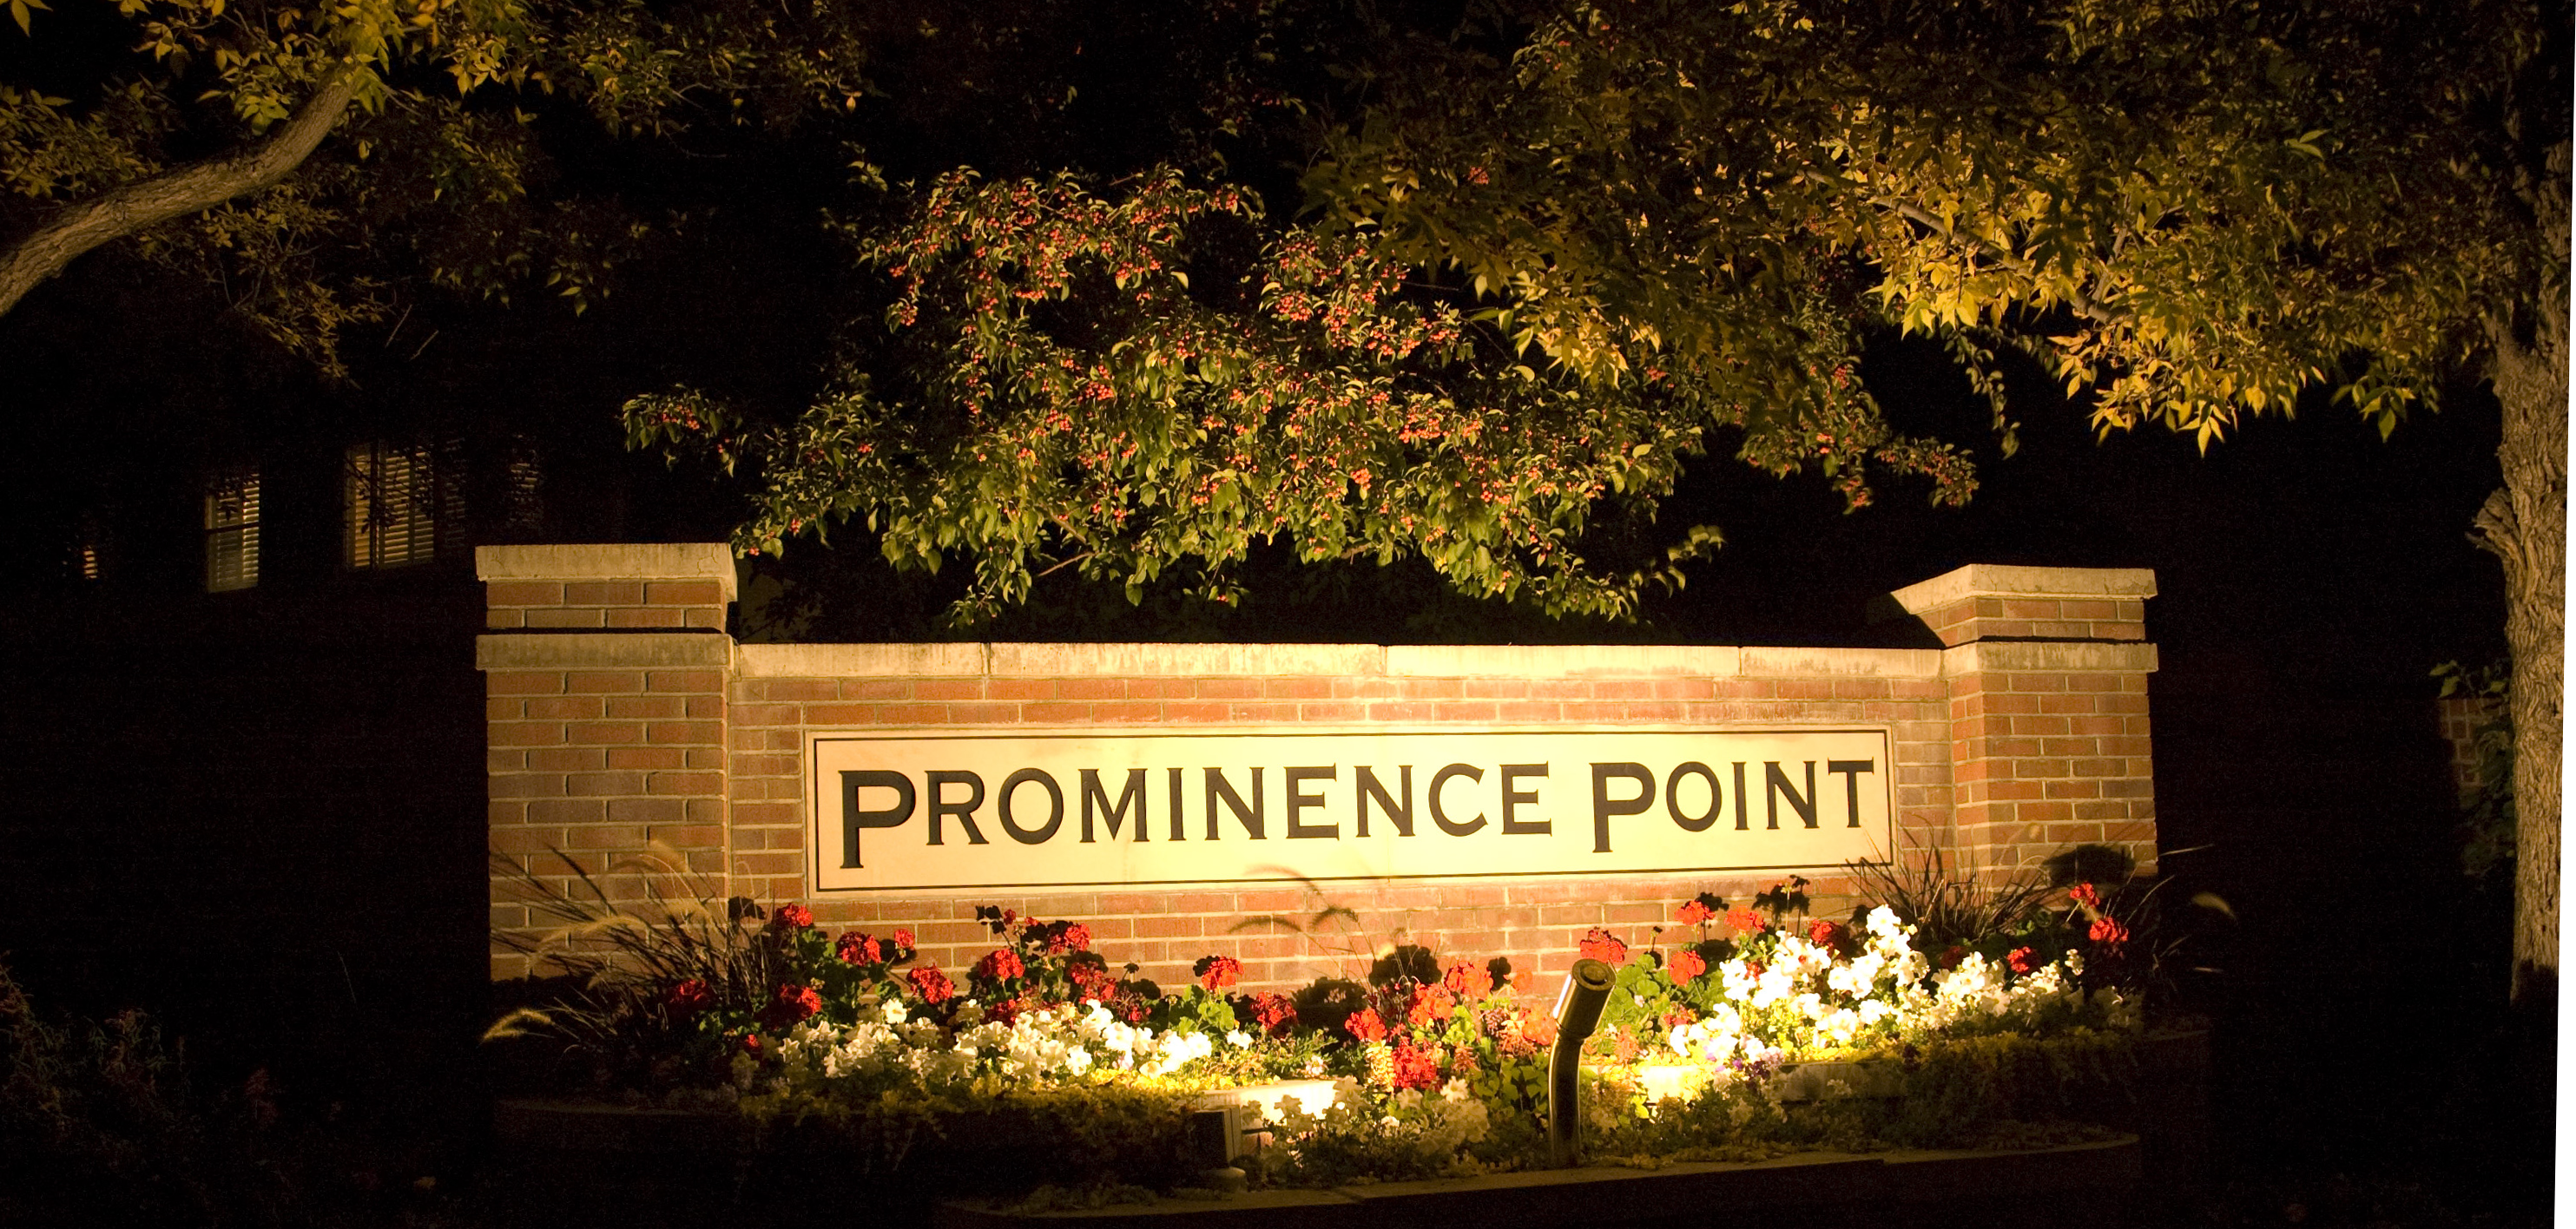 Make A Great First Impression With Professional Entrance Lighting For Your  Subdivision. Use Accent Lighting And Other Professional Outdoor ...